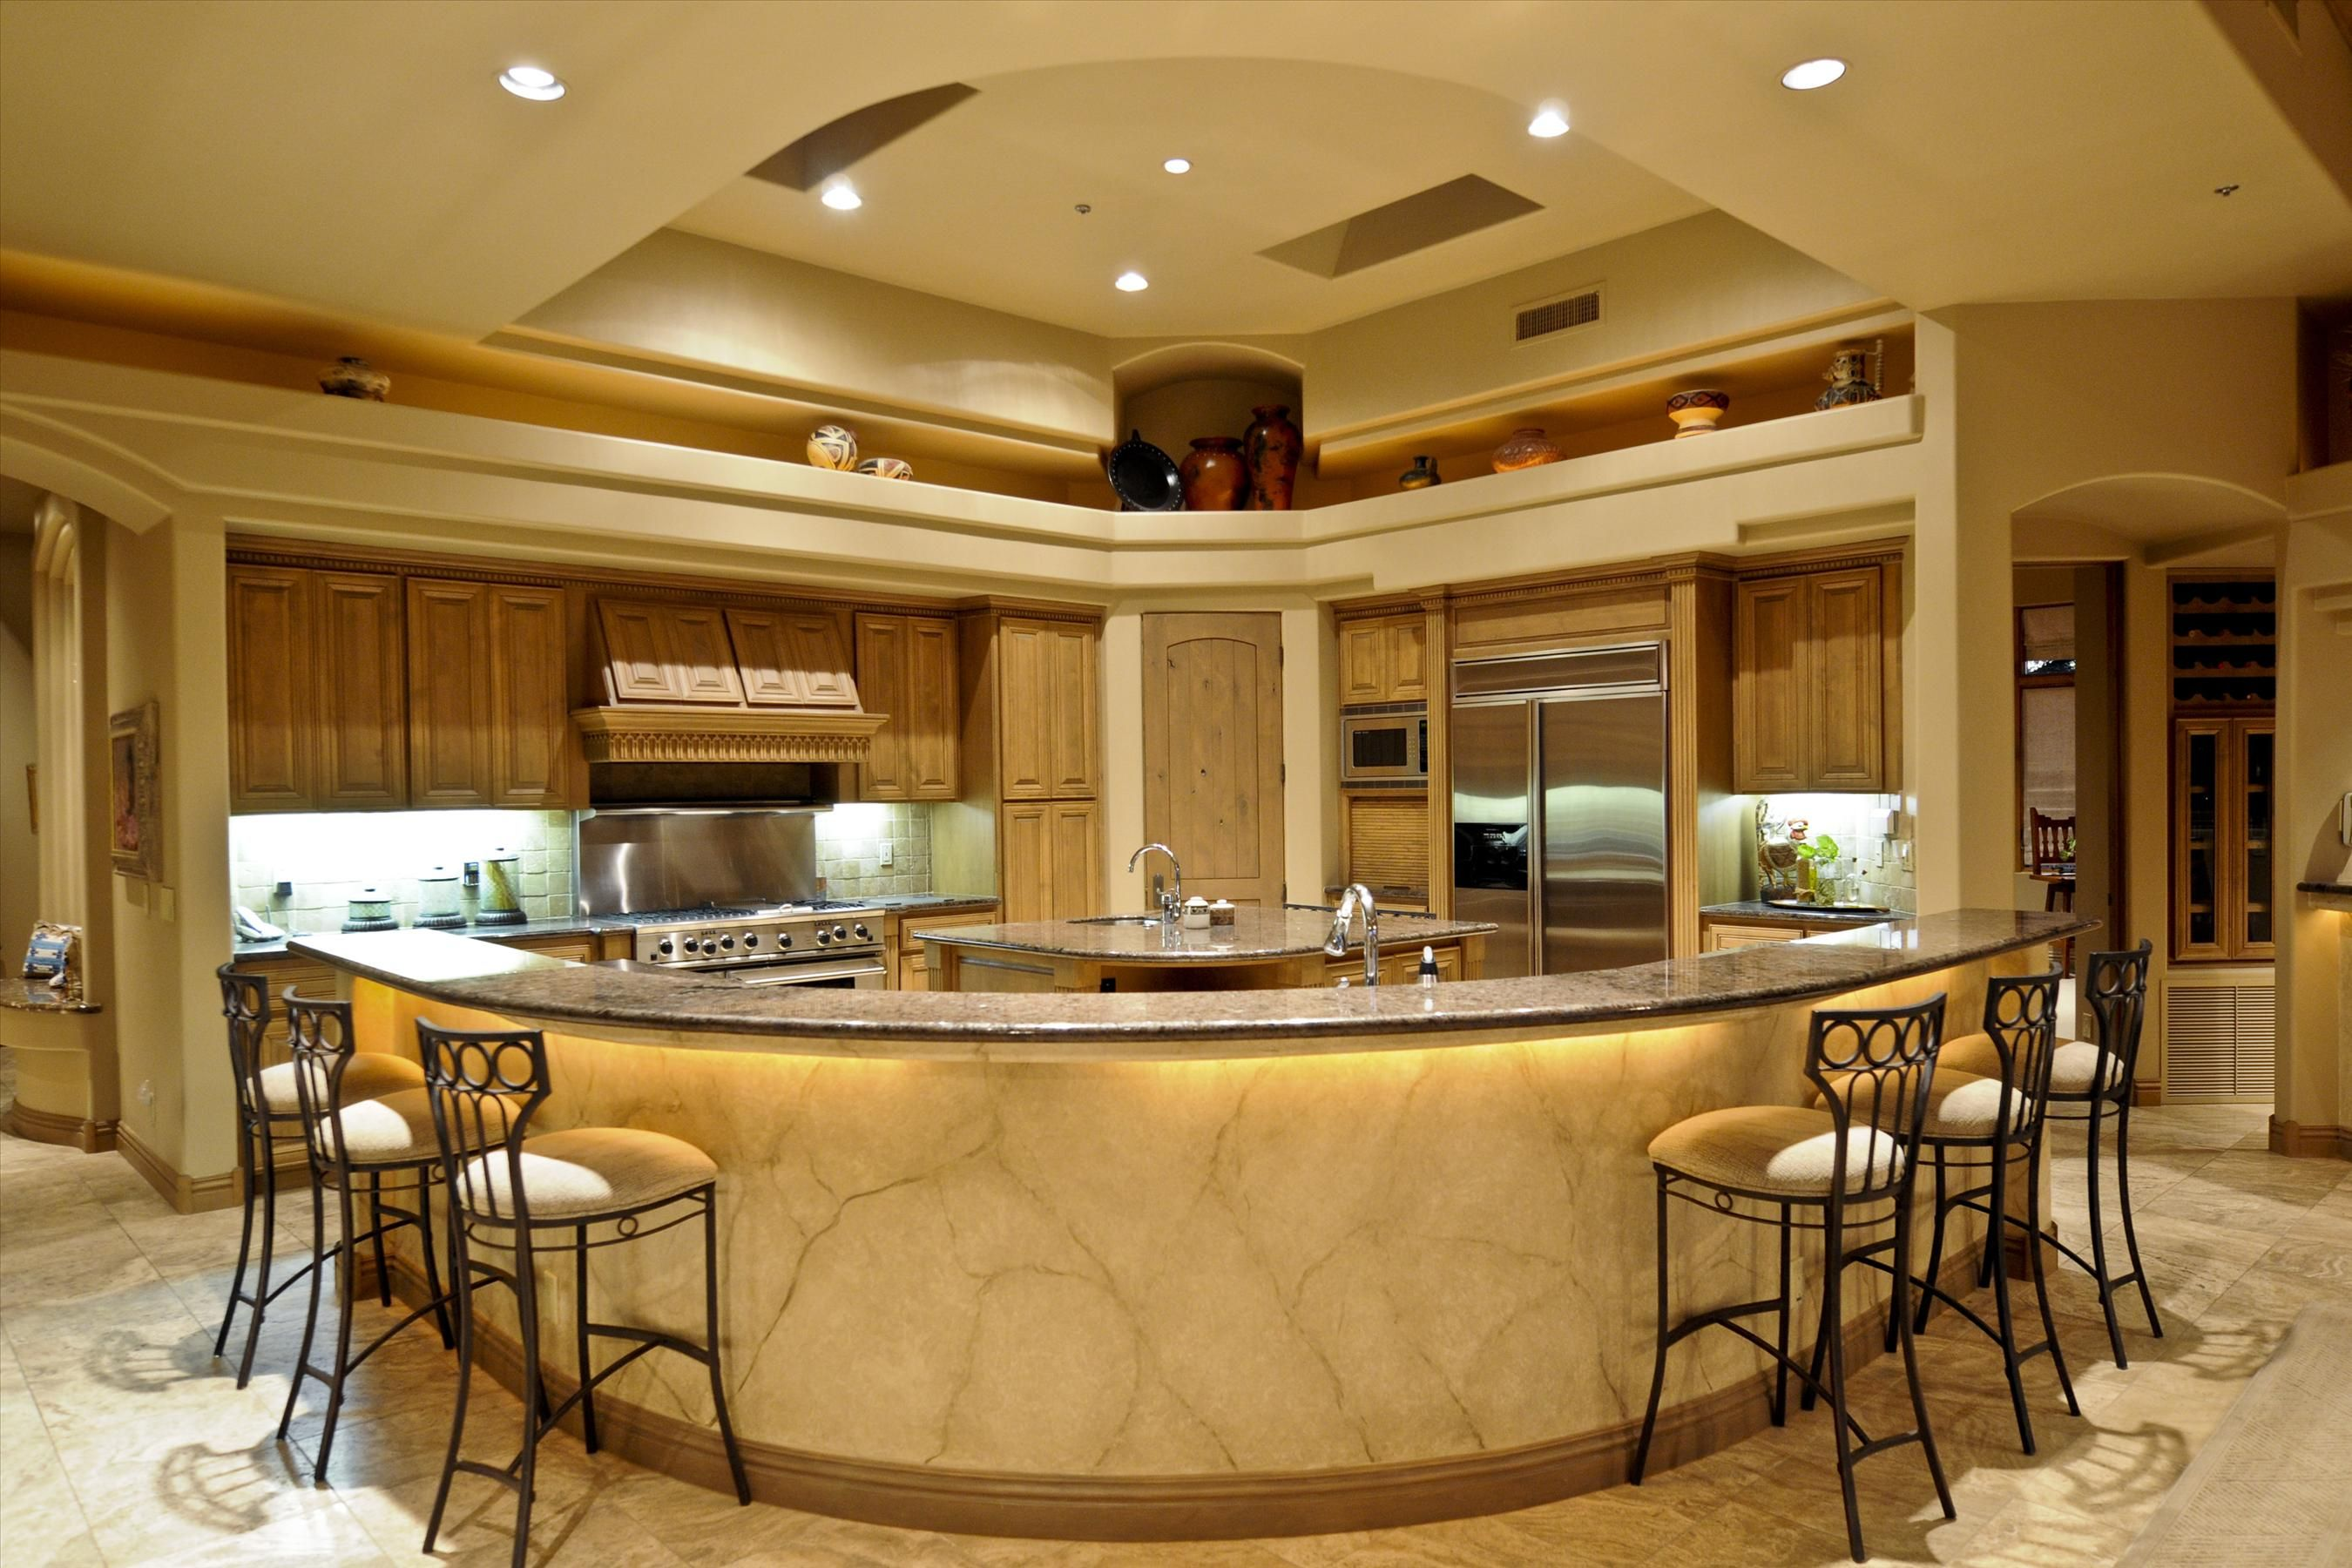 Premier luxury kitchens custom designed and for Find kitchen design ideas